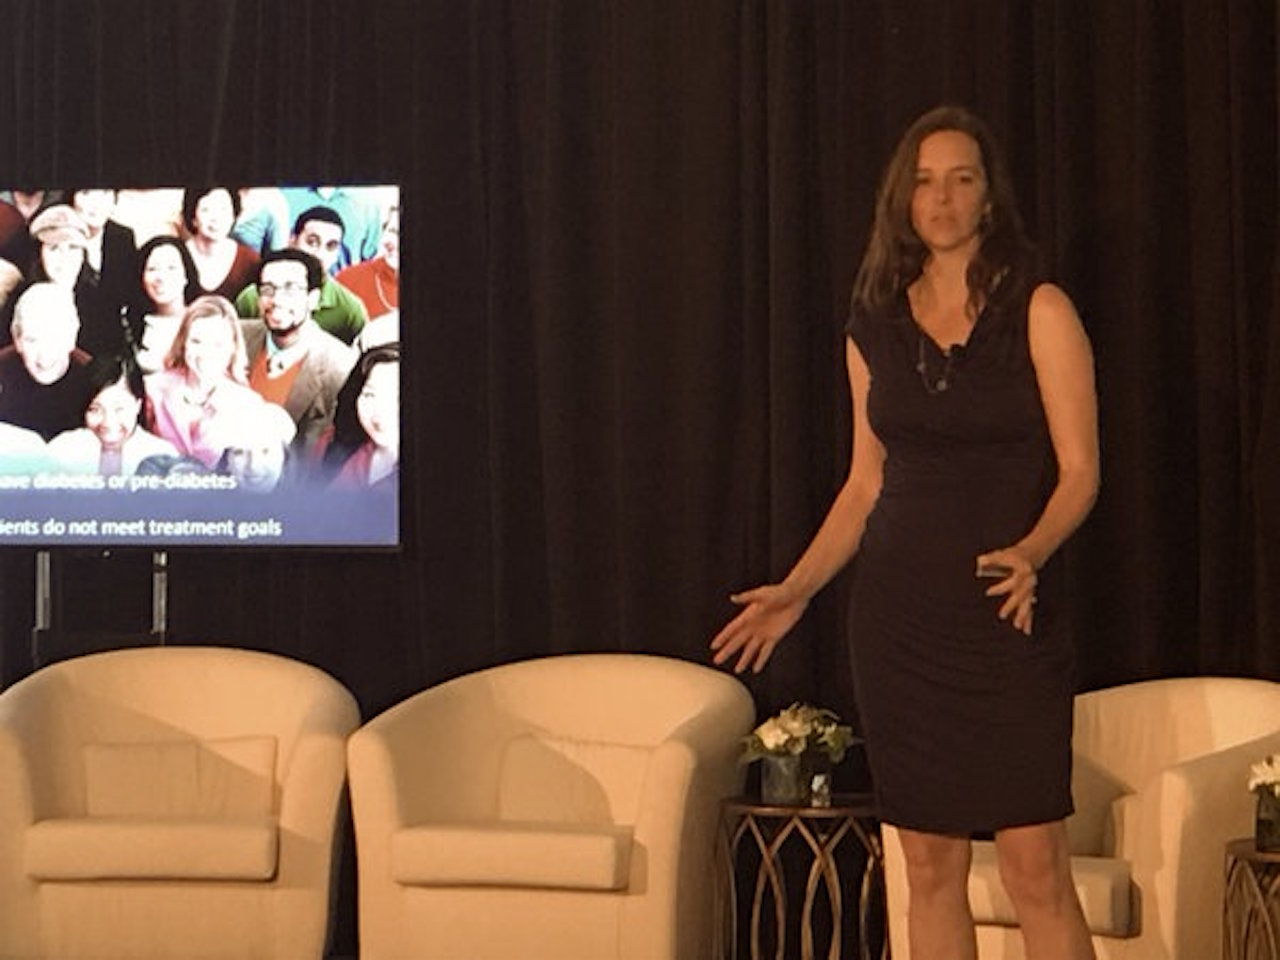 Dr. Lucie Ide, CEO and founder of Rimidi Diabetes, makes a presentation at Guidewell.